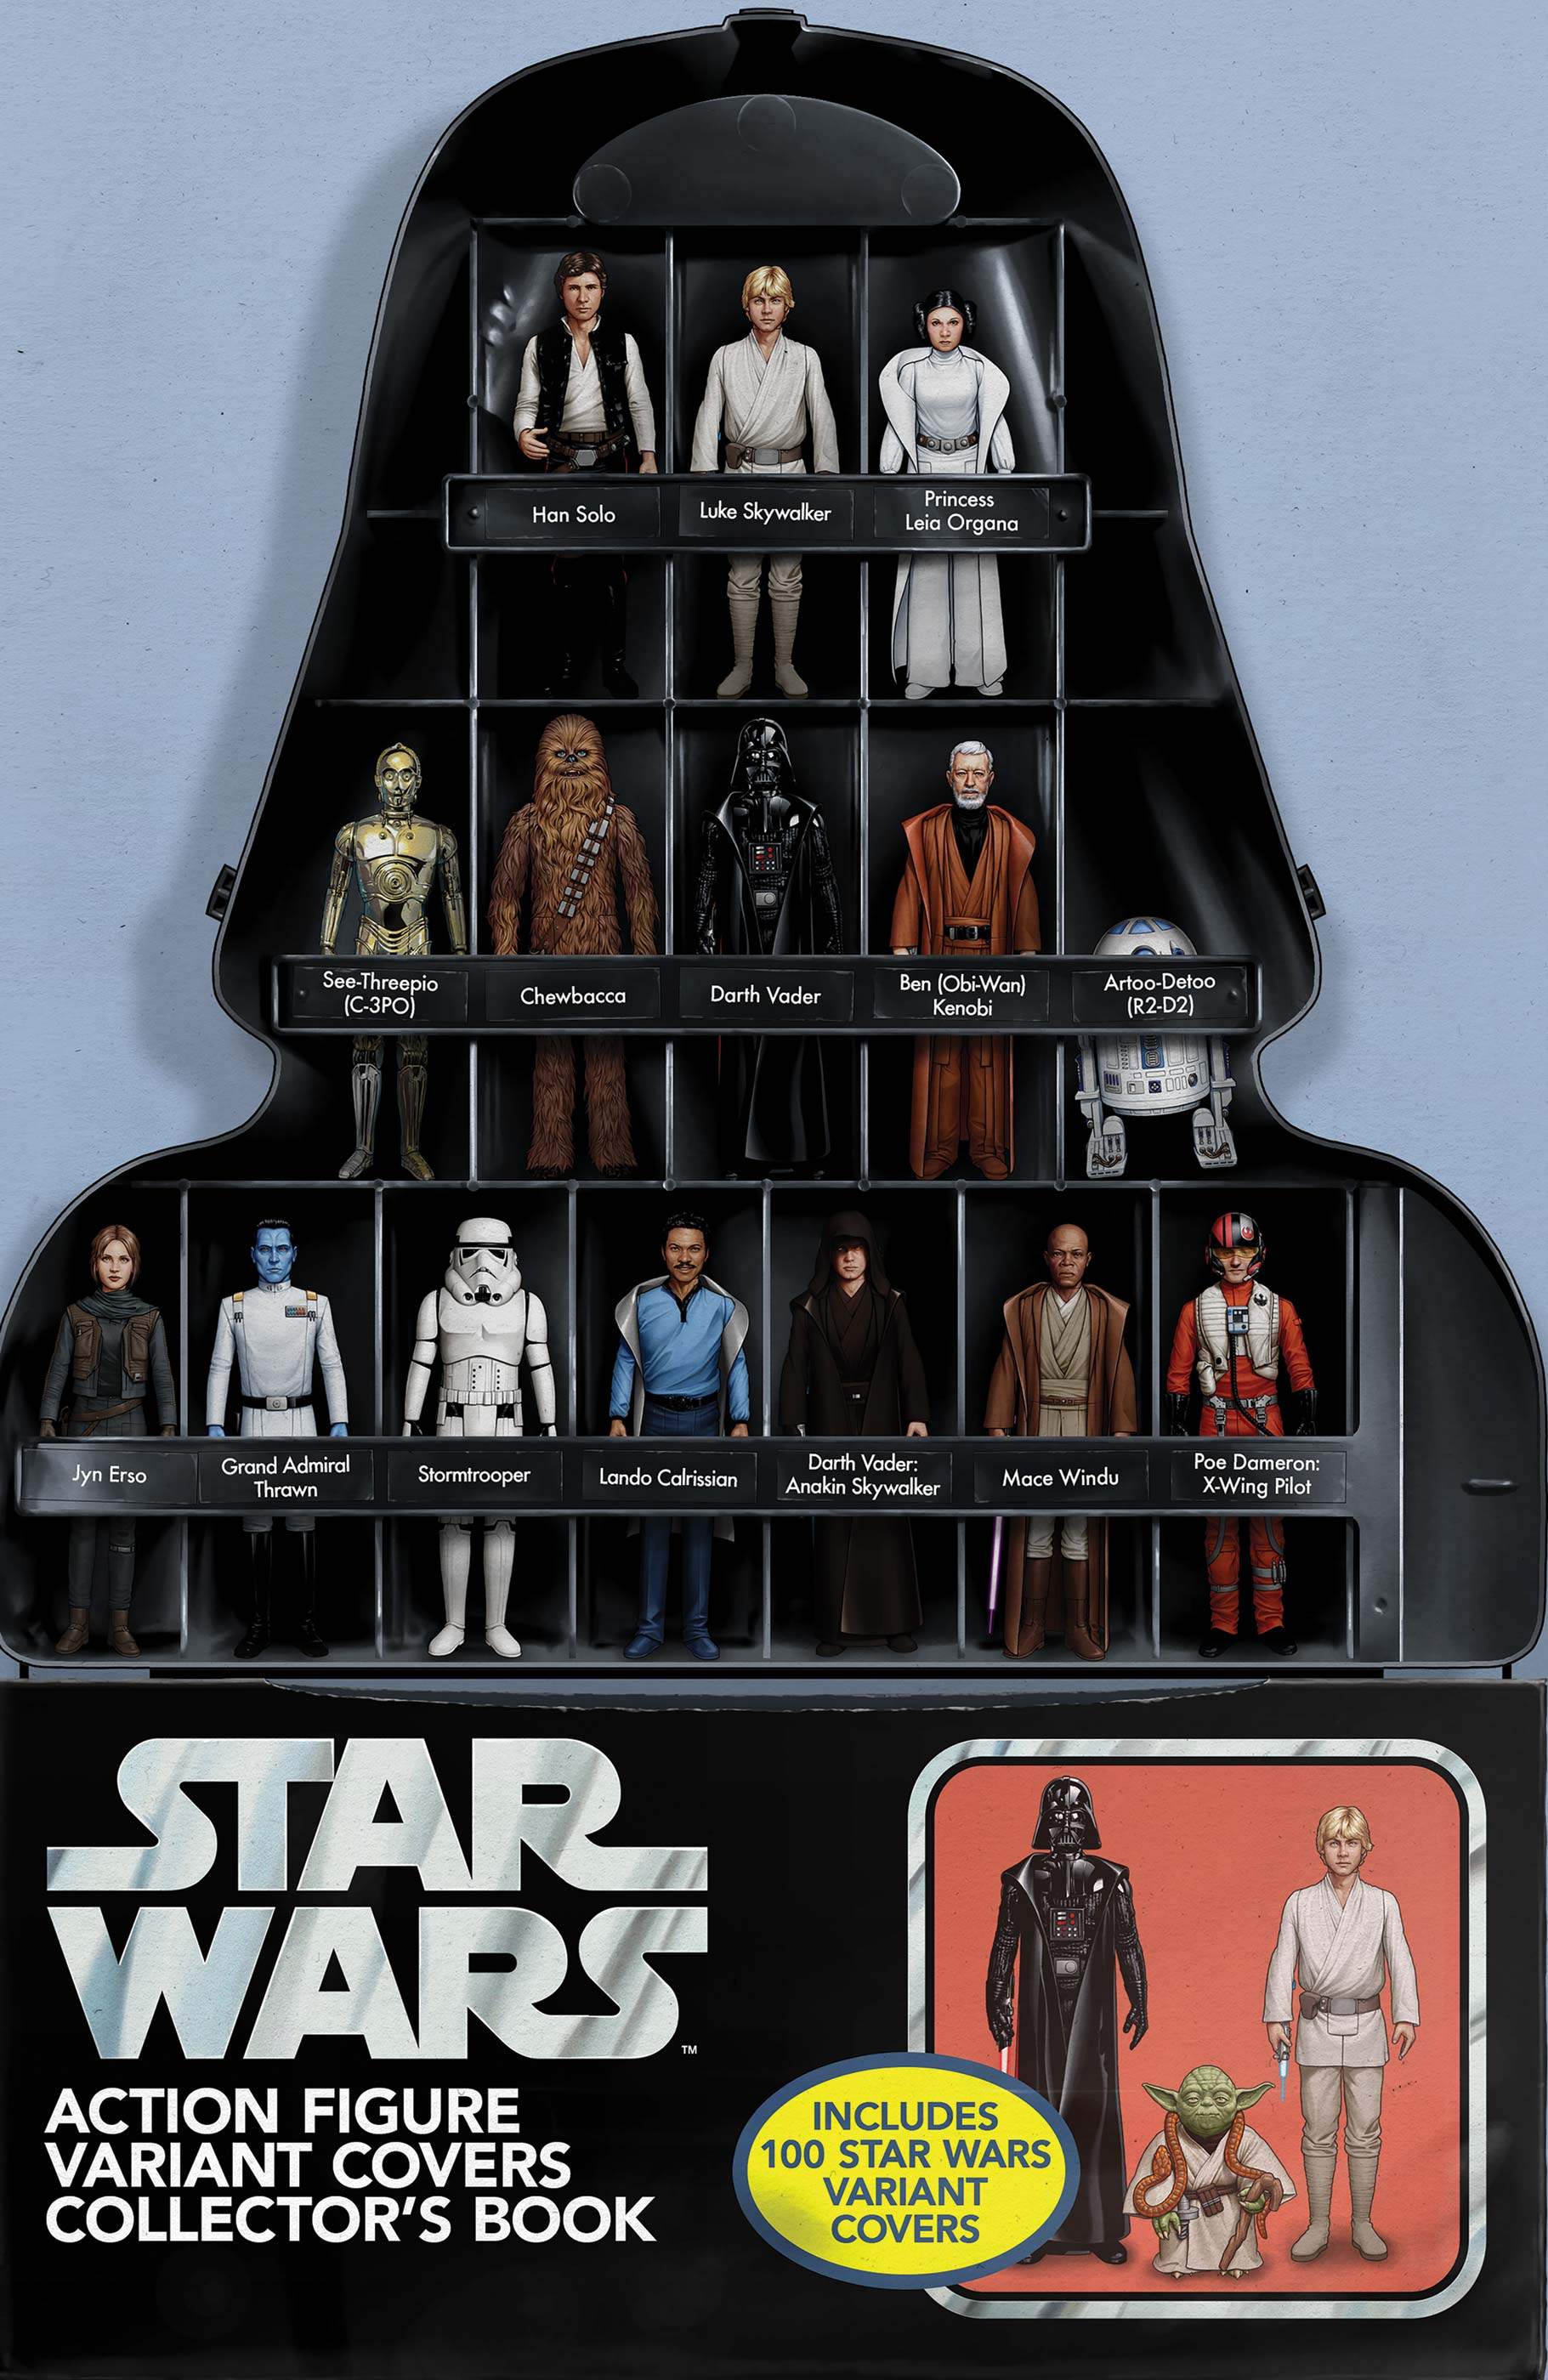 Star Wars: The Action Figure Variant Covers (2020) #1 (Variant)